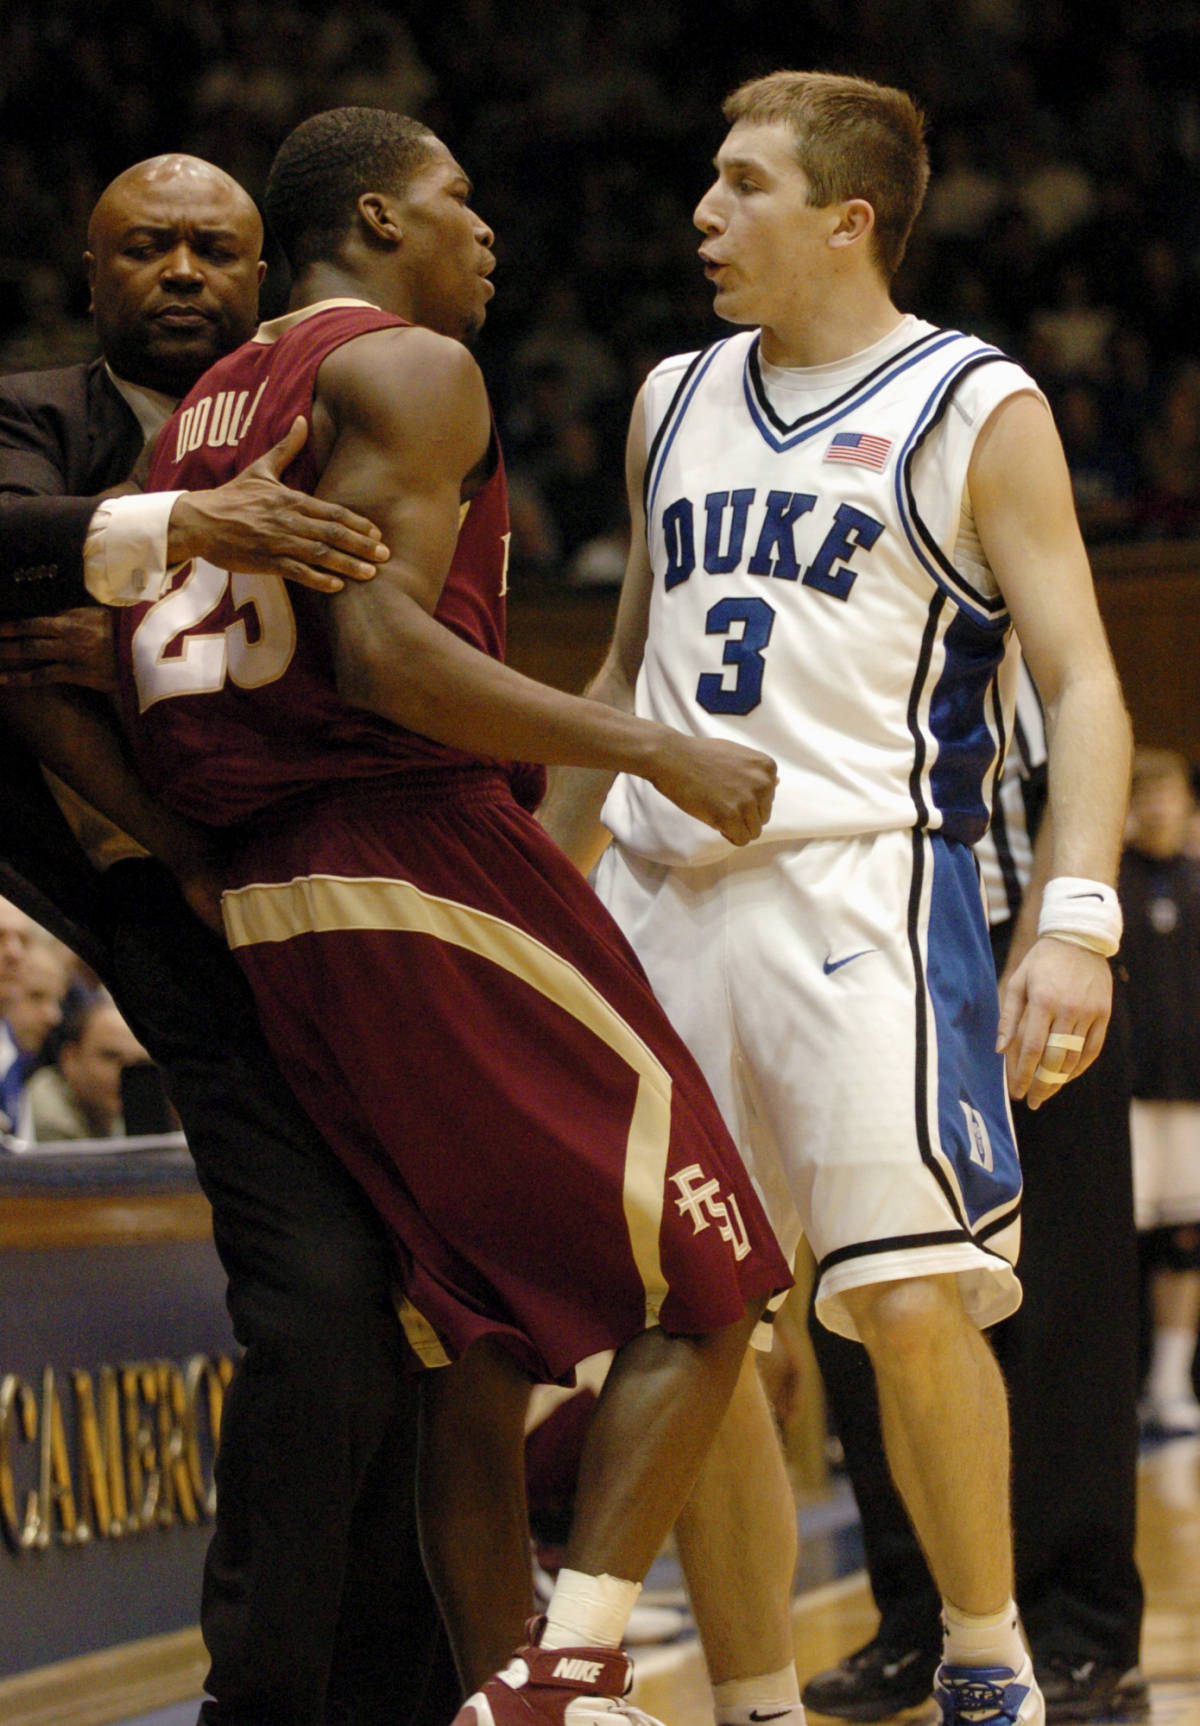 Florida State's head coach Leonard Hamilton, left, pulls his player Toney Douglas (23) away from Duke's Greg Paulus (3) as they exchange words in the second half of a basketball game in Durham, N.C., on Sunday, Feb. 4, 2007. Paulus received a foul and the Florida State bench received a technical foul. Florida State upset Duke 68-67. (AP Photo/Sara D. Davis)